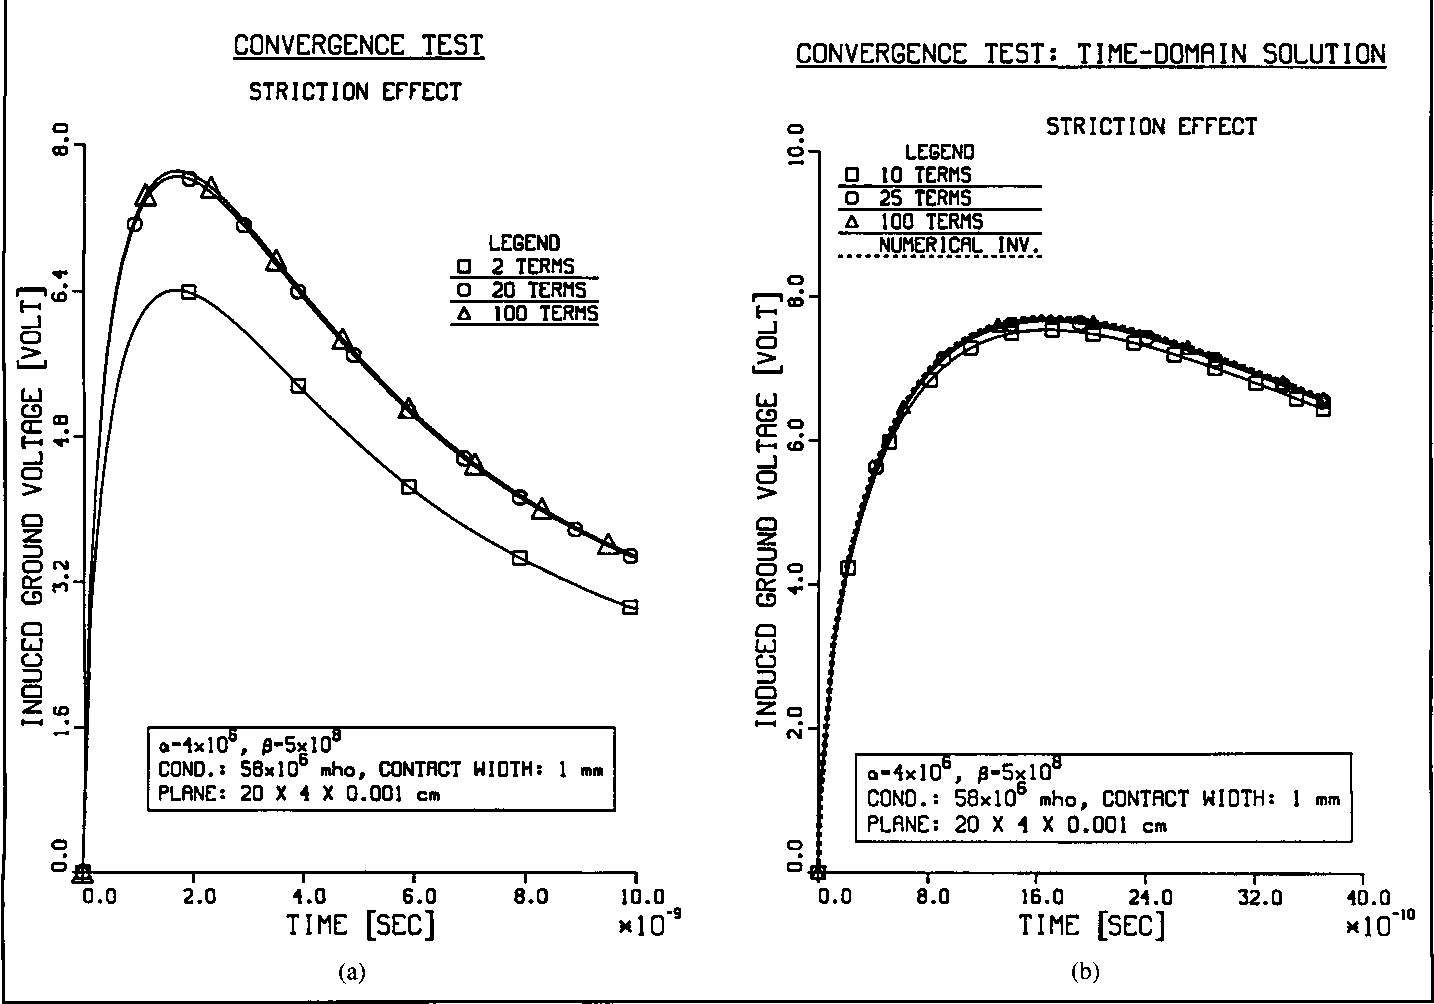 Figure 3: Convergence test for EMP ground-current excitation (striction effect). Standard model of Fig. 2, except that c - 10 mm.; (a) via numerical Laplace inversion; (b) using (10) and (11) in the time domain.